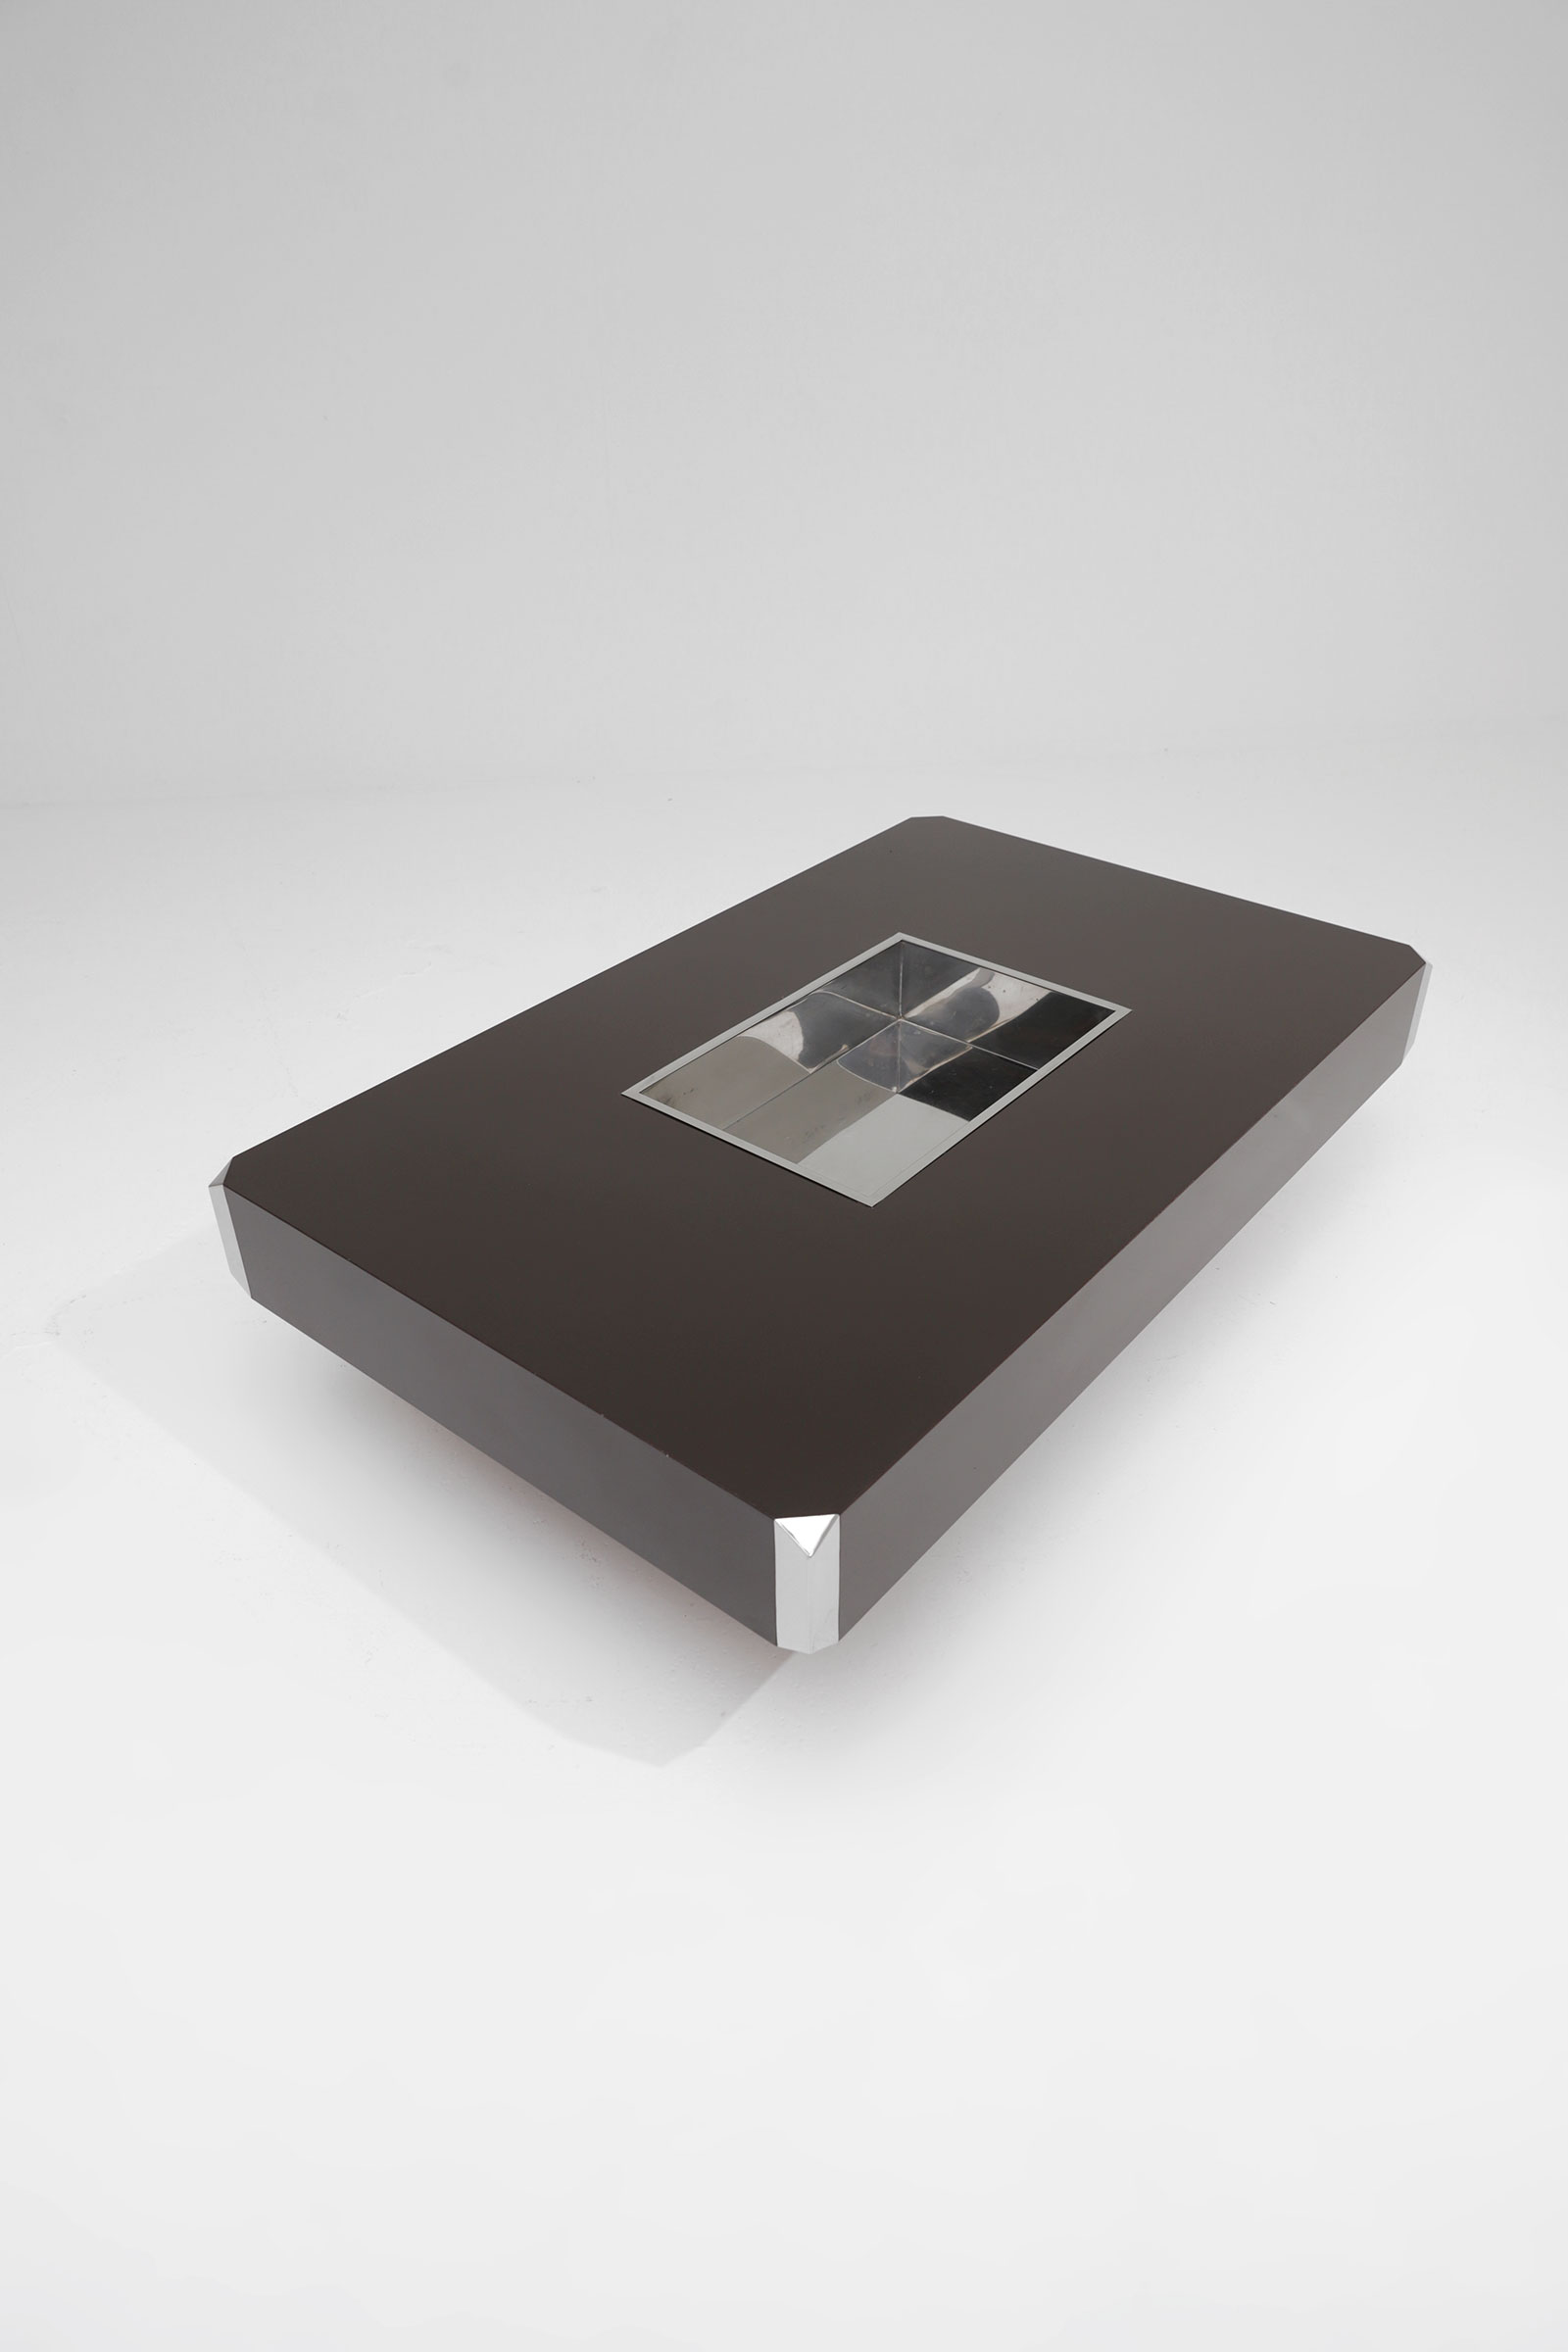 Willy Rizzo Coffee Table for Mario Sabbot 1970simage 8